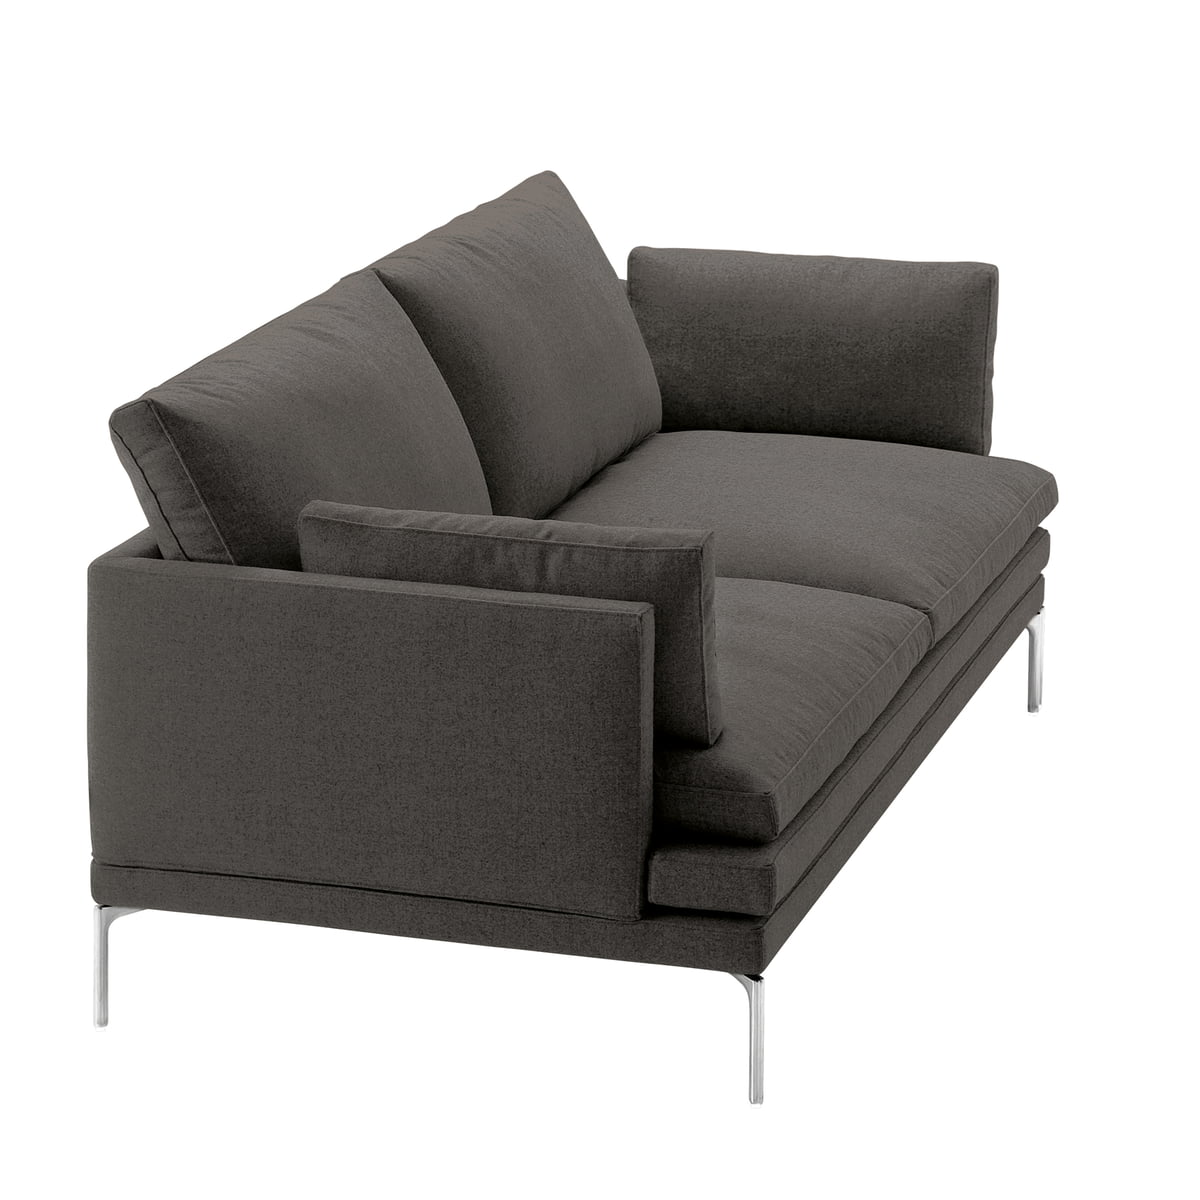 couch 180 cm breite ikea kivik two seat sofa the cover is. Black Bedroom Furniture Sets. Home Design Ideas